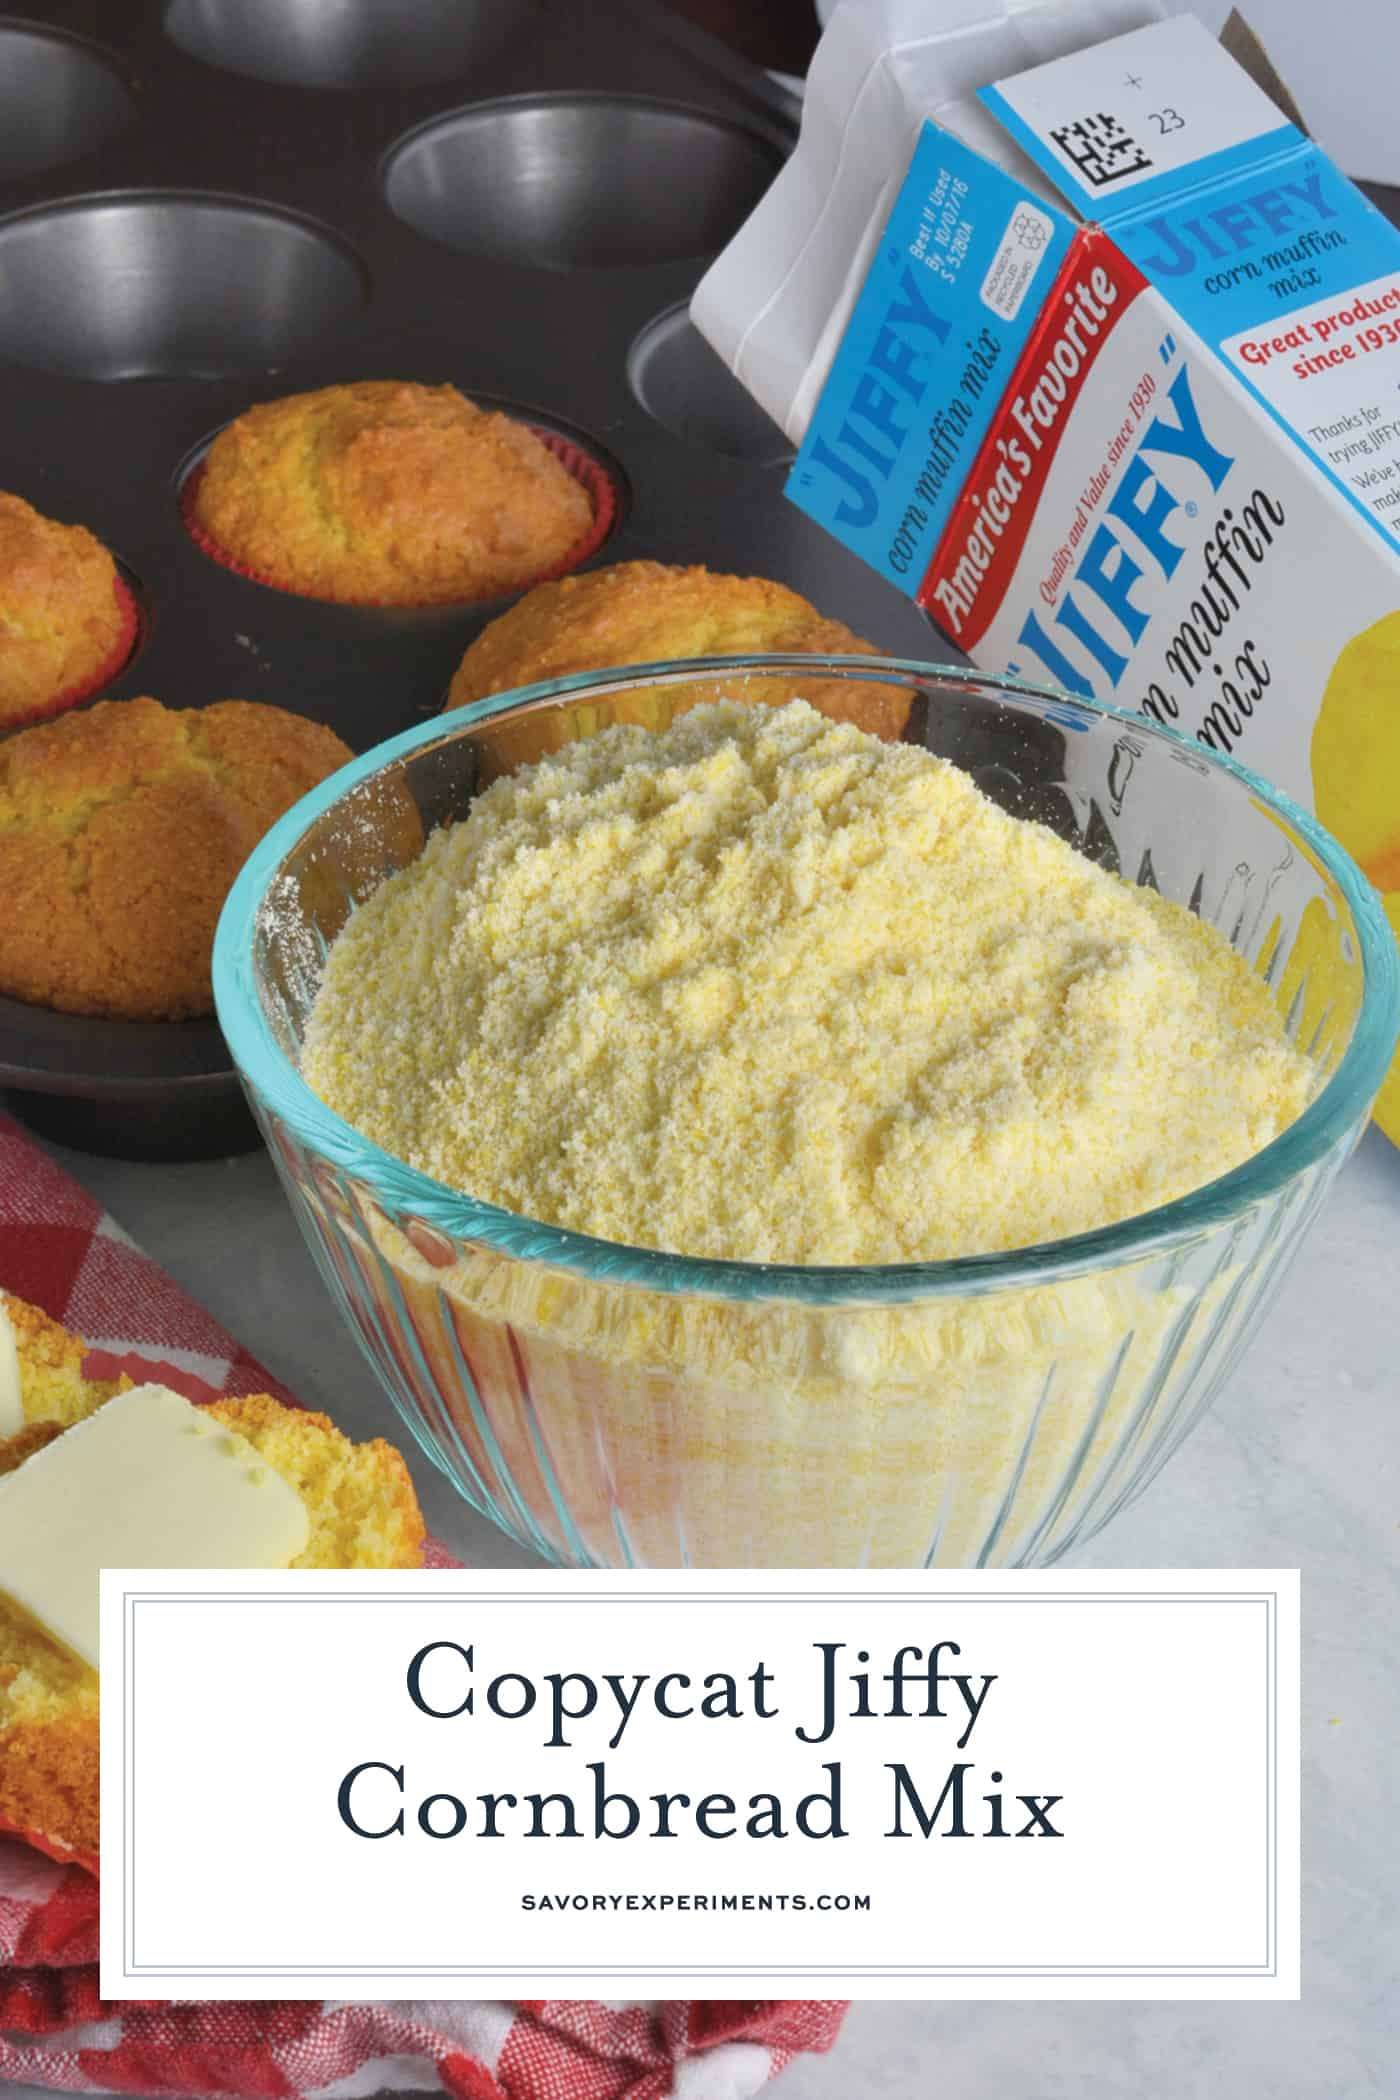 Copycat Jiffy Cornbread Mix is the perfect, sweet accompanimentto any meal. With just a few simpleingredients, you can make your very own mix. #copycatcornbread #jiffymix www.savoryexperiments.com